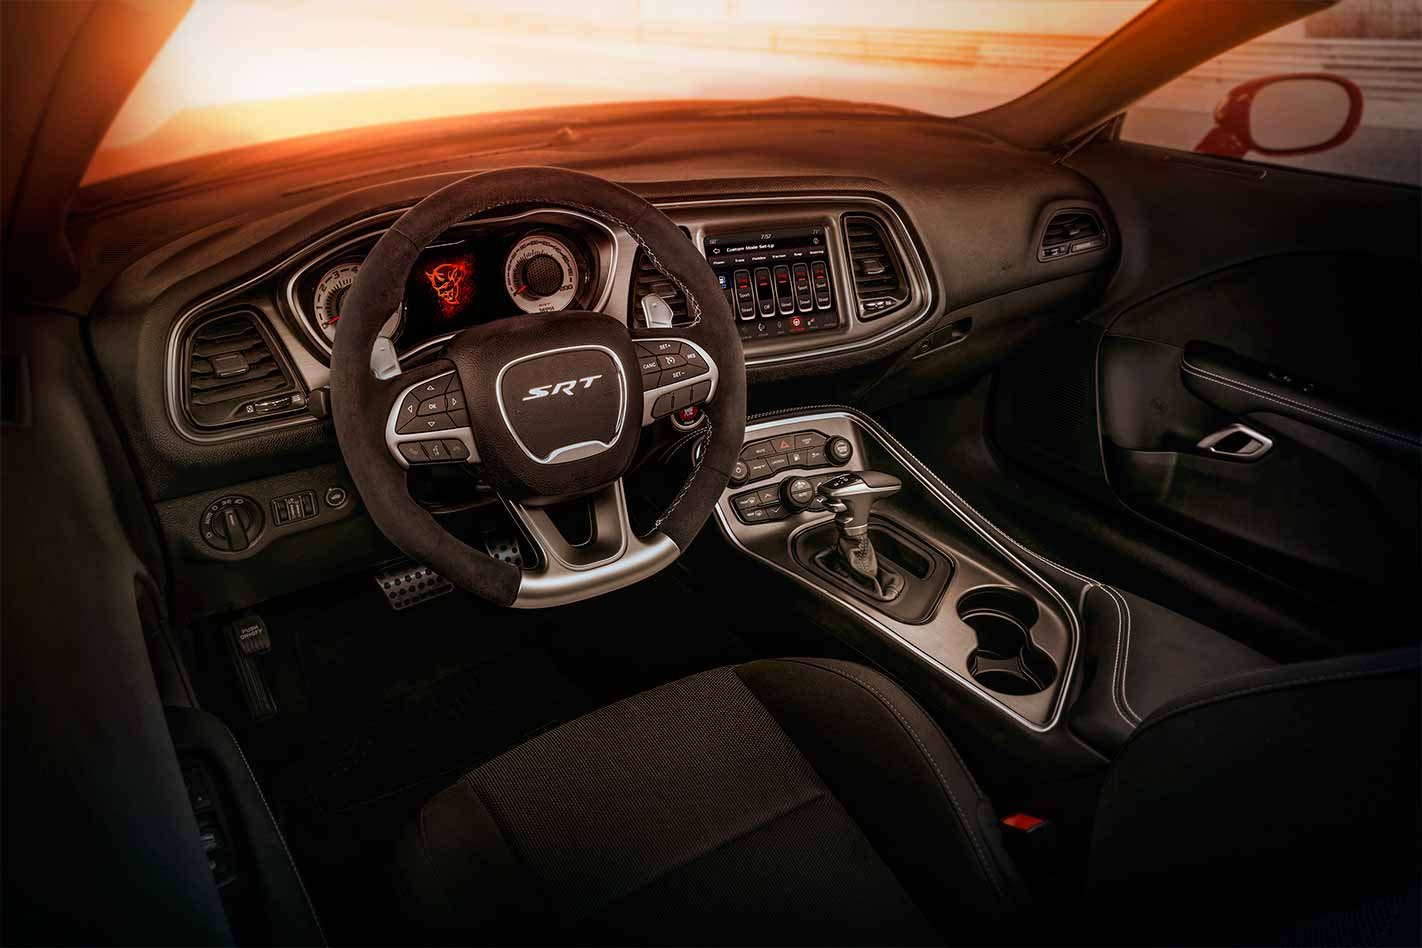 2018 Dodge Challenger SRT Demon interior